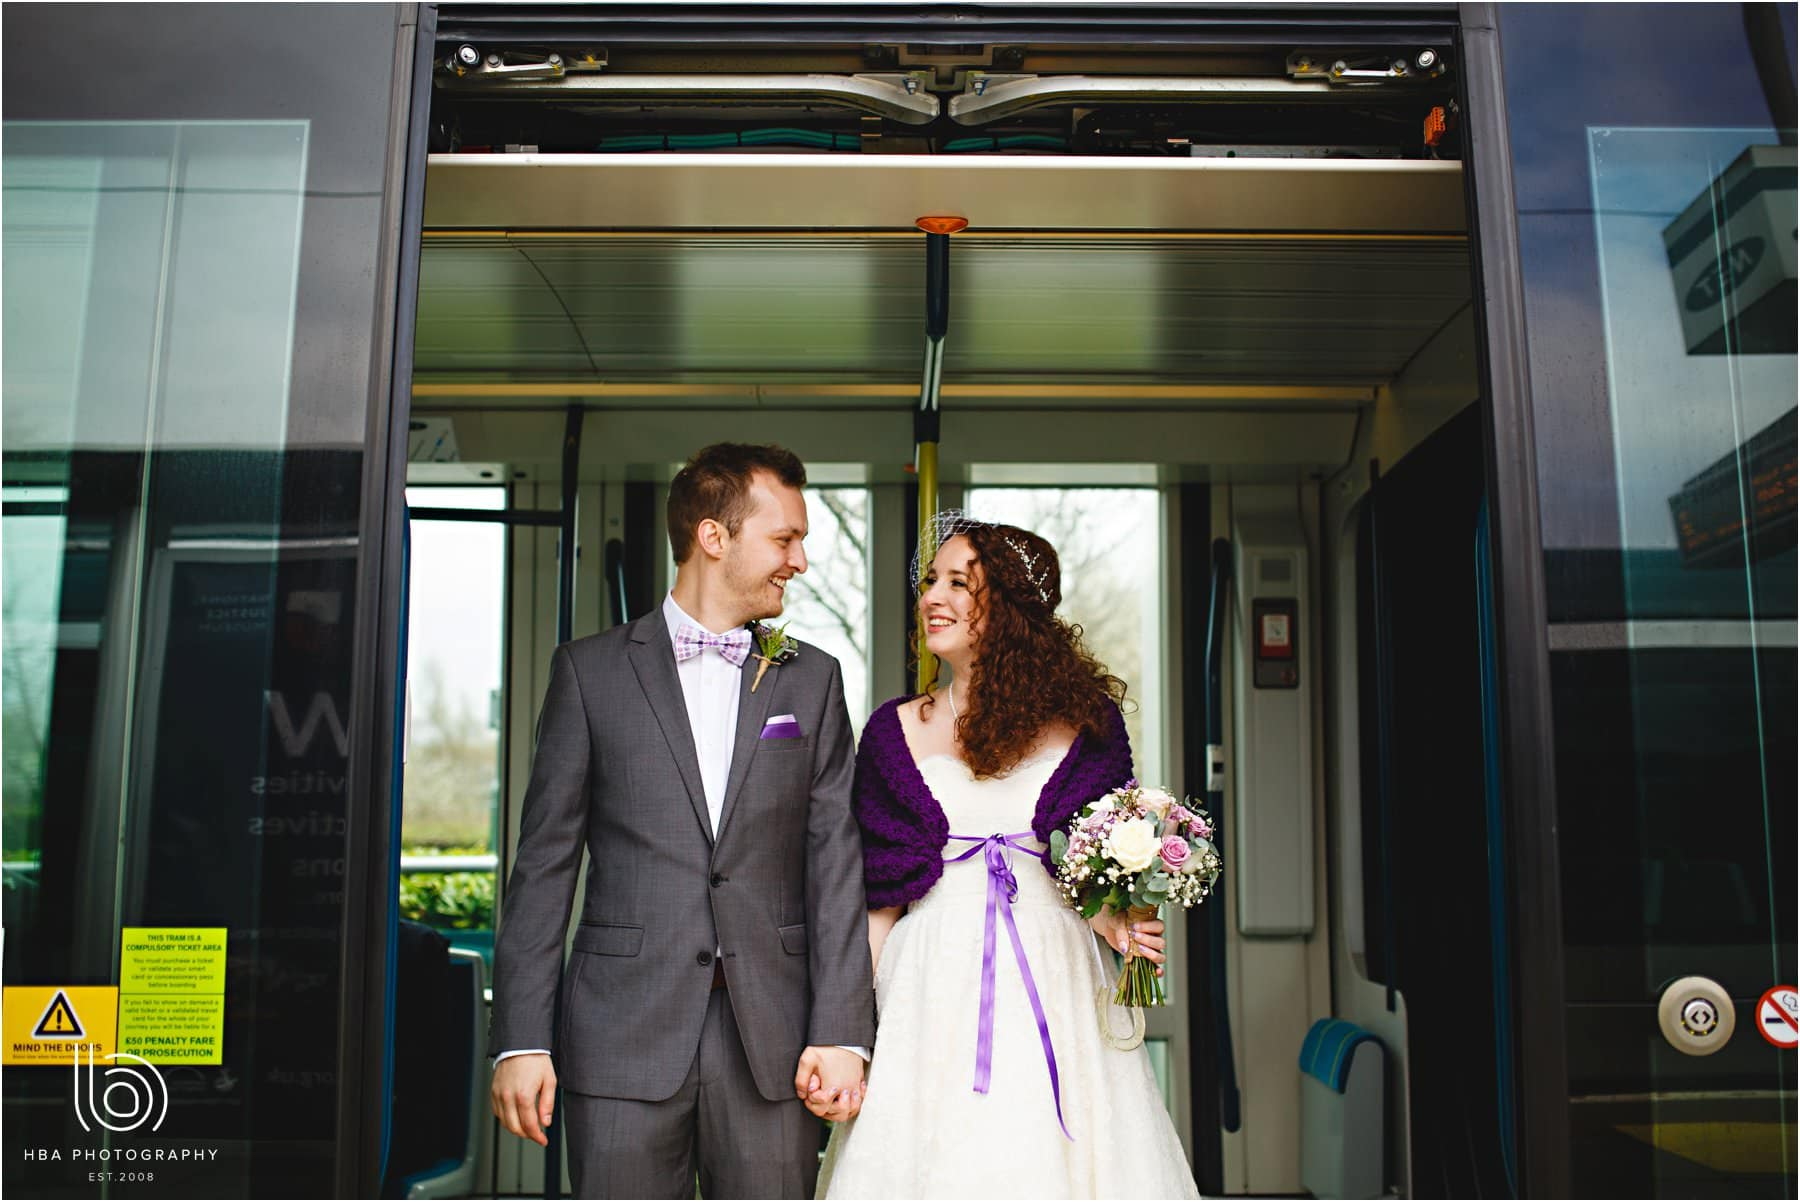 the bride and groom on the tram